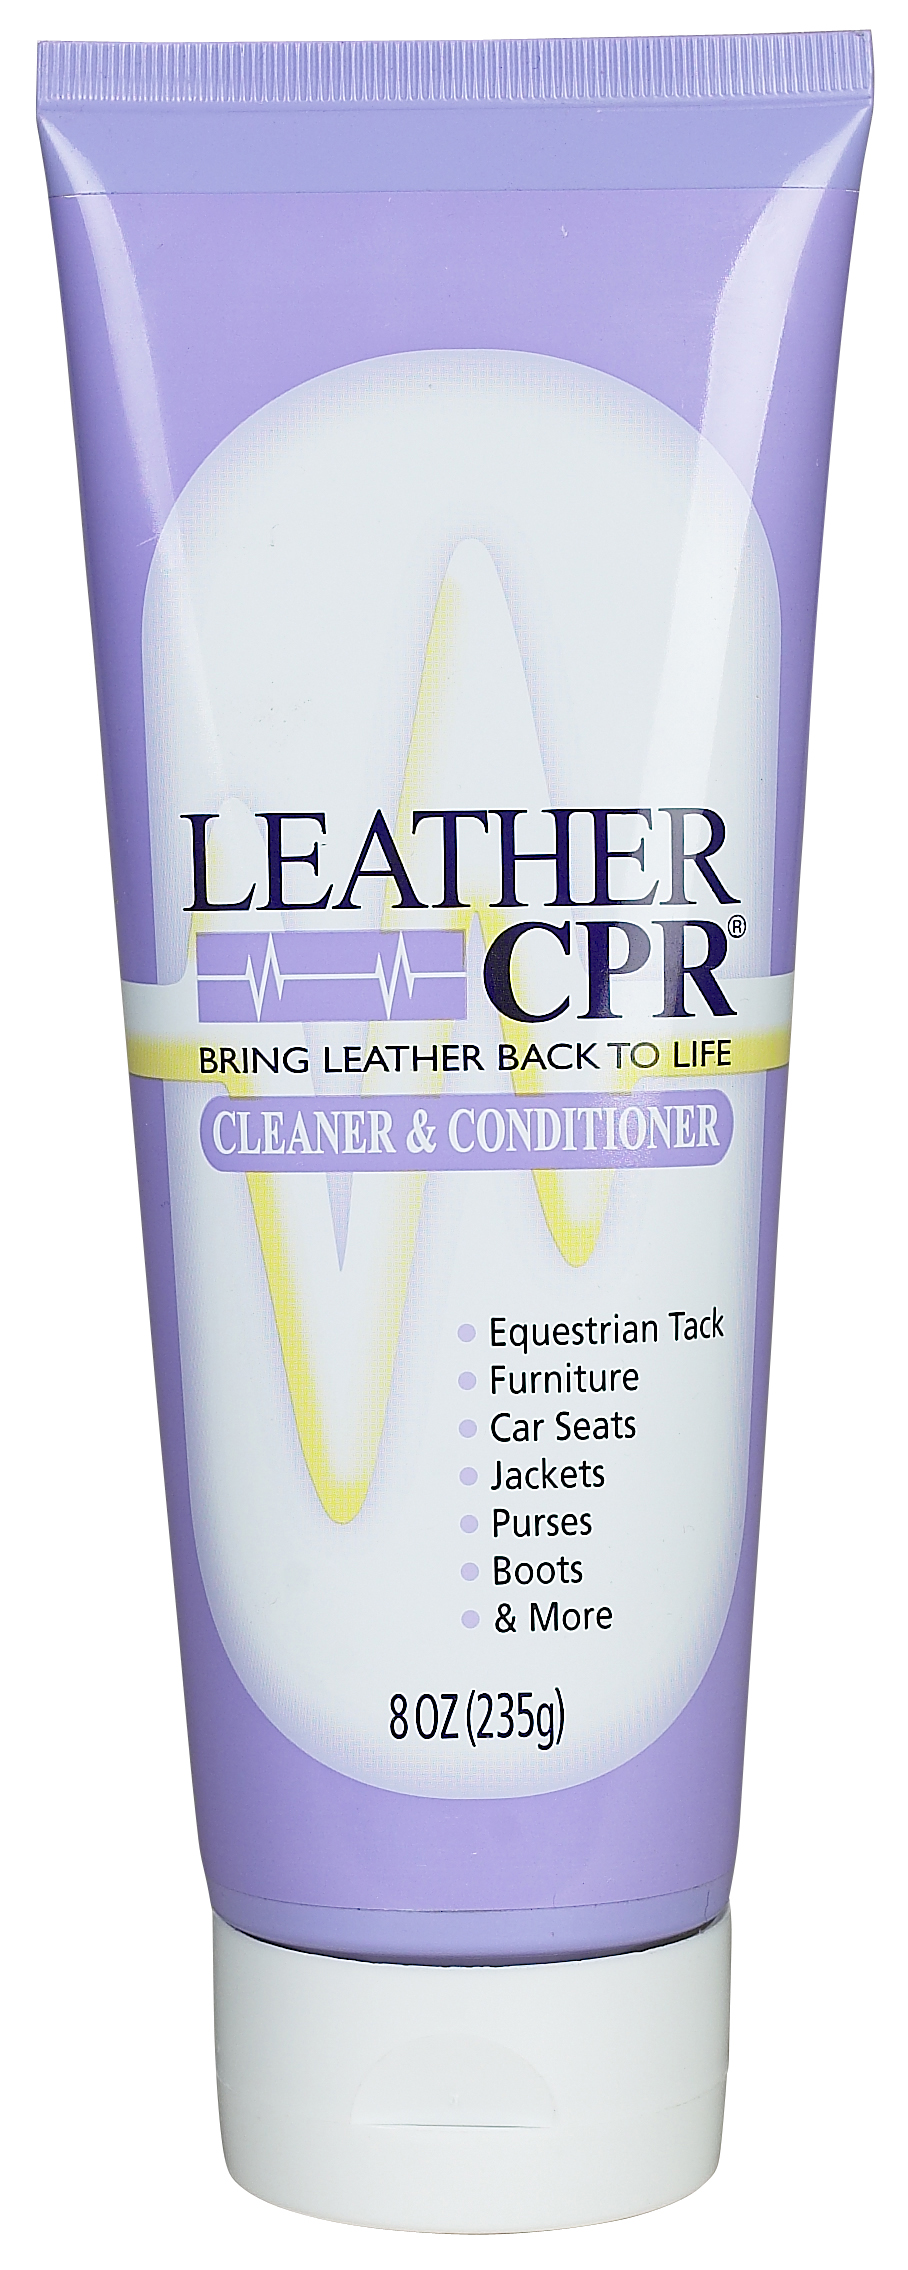 Superior Vacuum & Sew - Leather CPR Cleaner and Conditioner